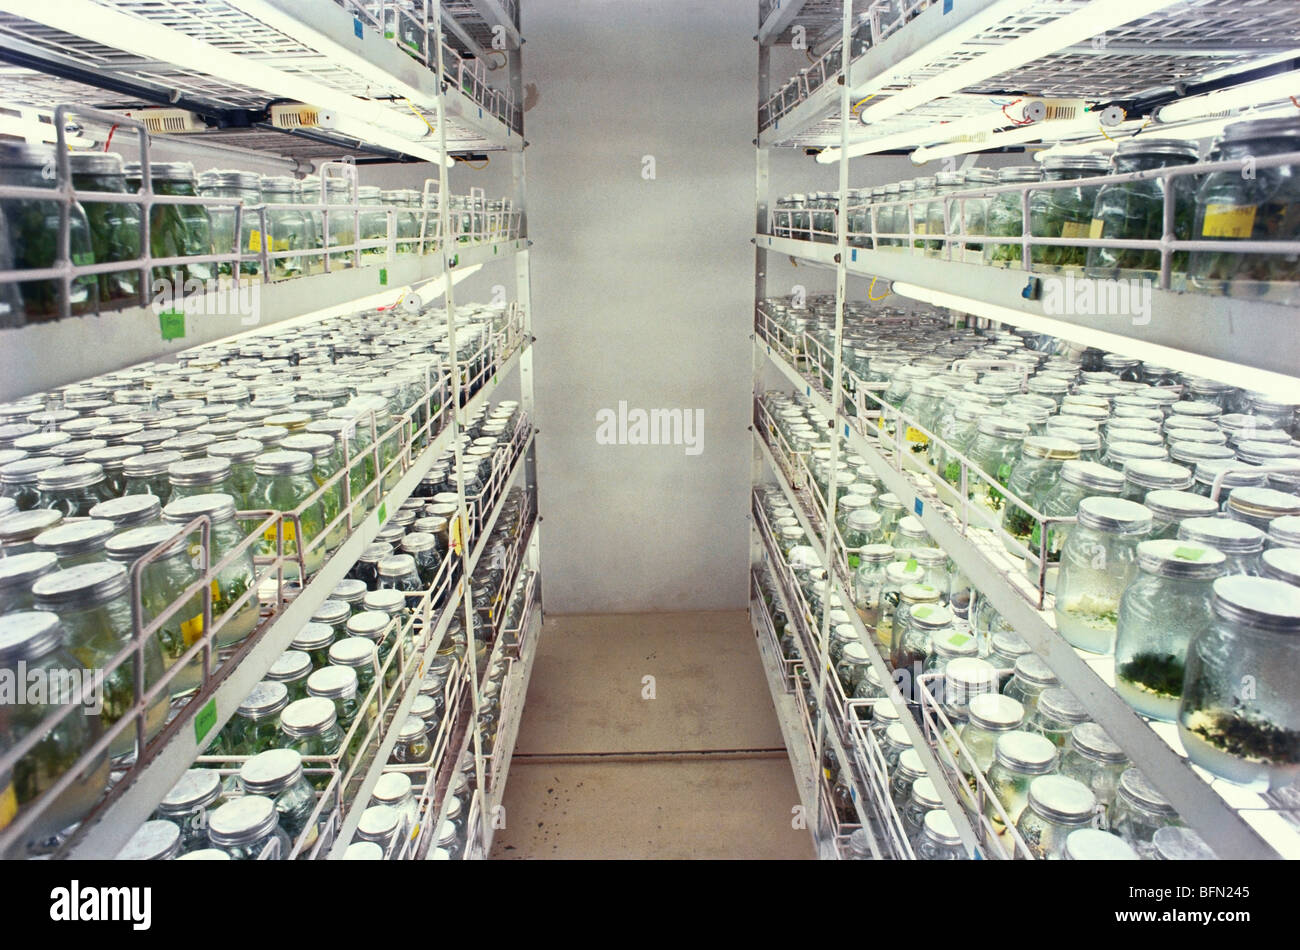 DJD 61345 : Tissue culture room ; India Stock Photo, Royalty Free ...